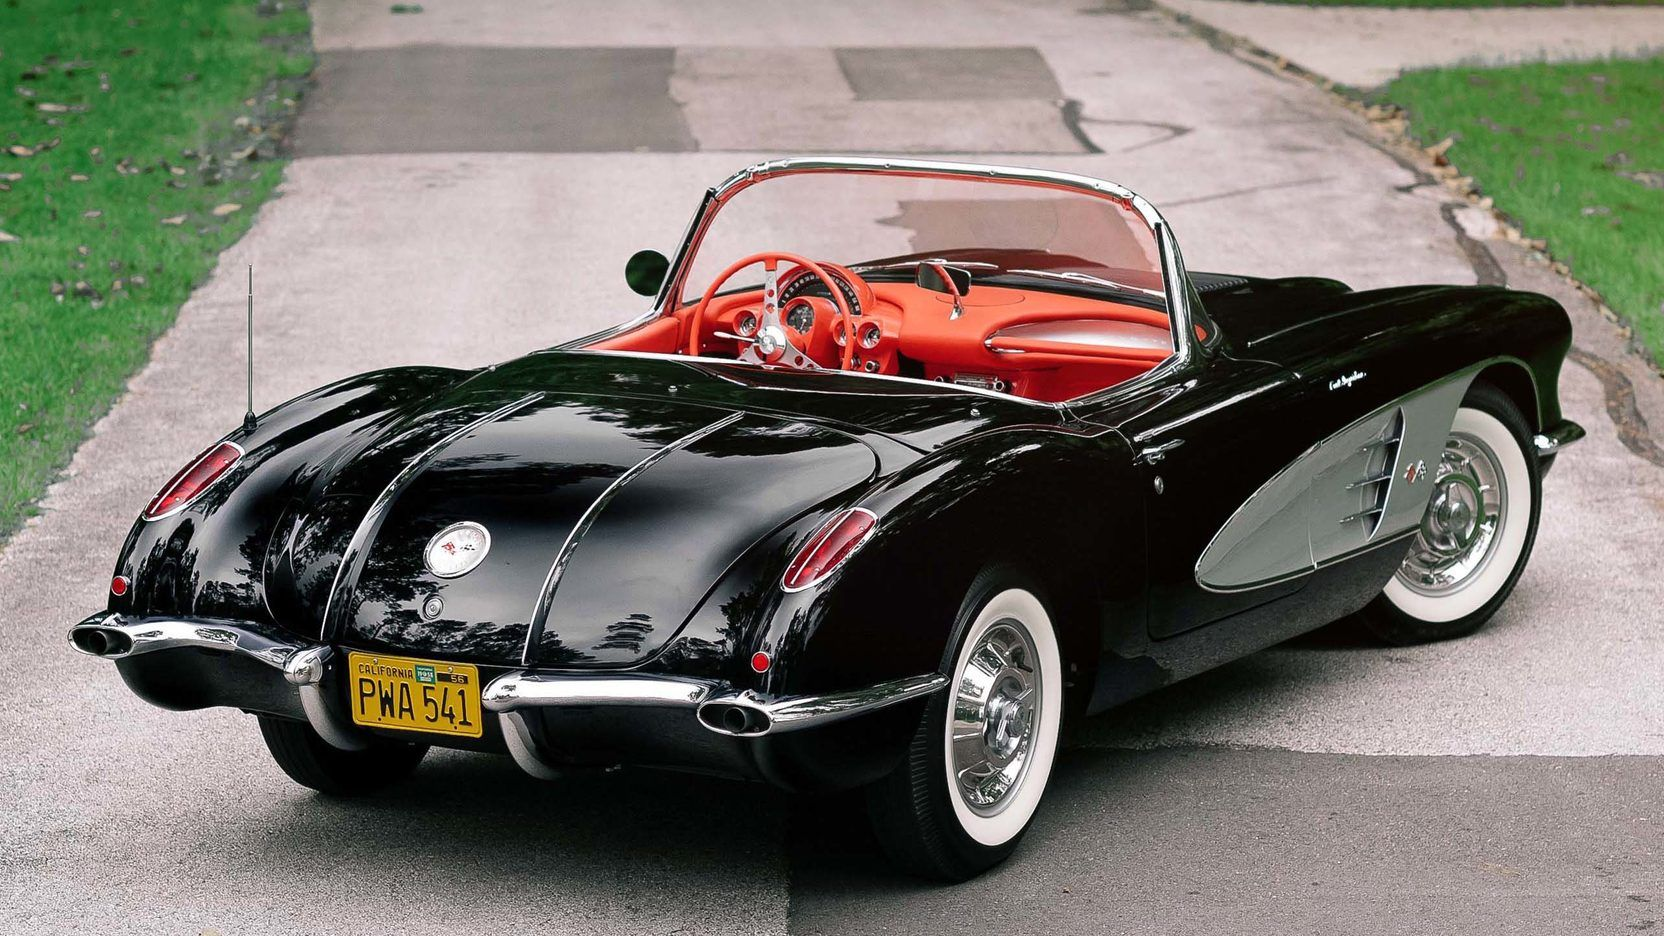 1958 Chevrolet Corvette 3 Print Image Re Pin Brought To You By Agentsofcarins At Houseofinsurance Corvette Convertible Chevrolet Corvette Classic Cars